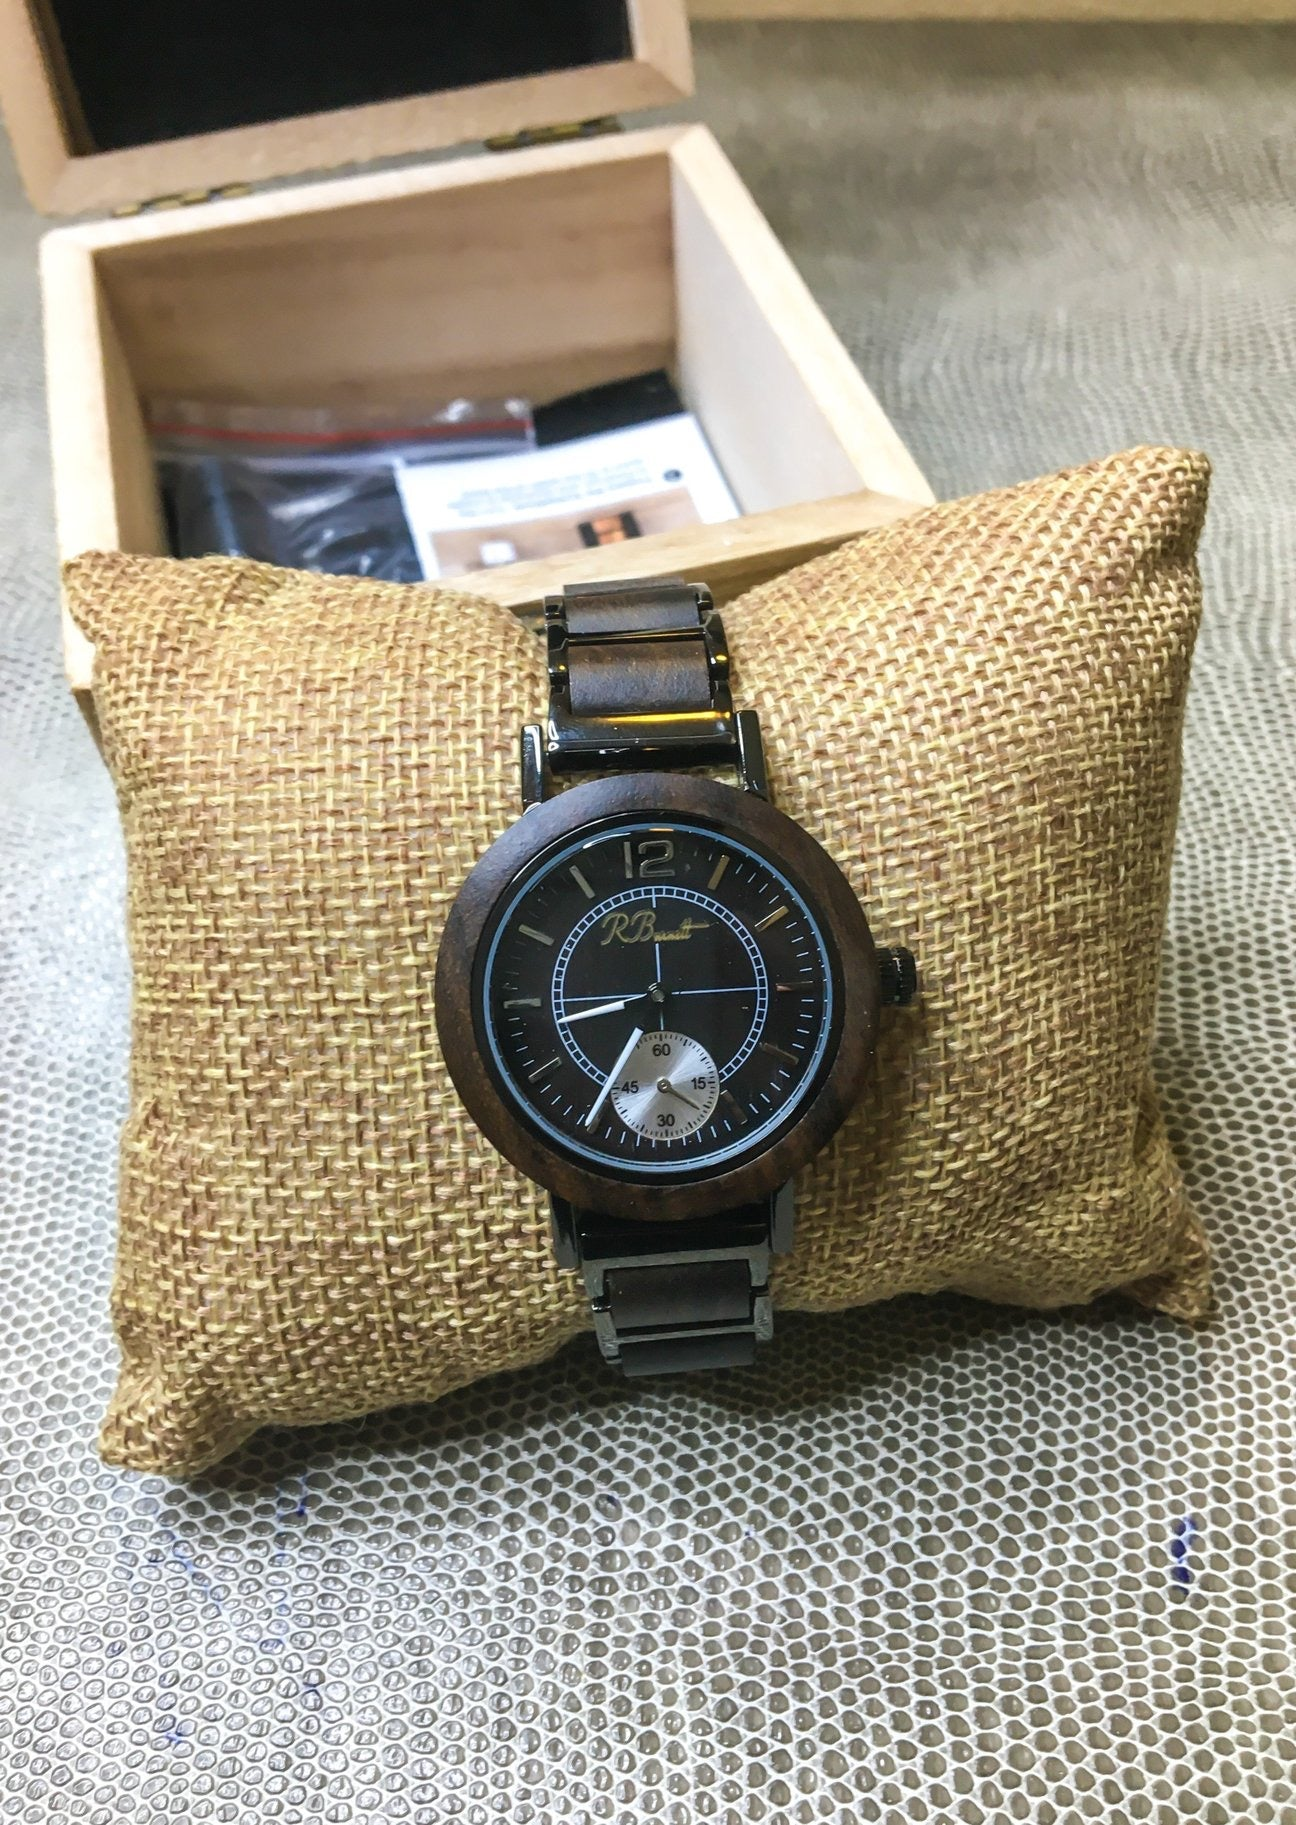 Metallo - Women's Wooden Watch